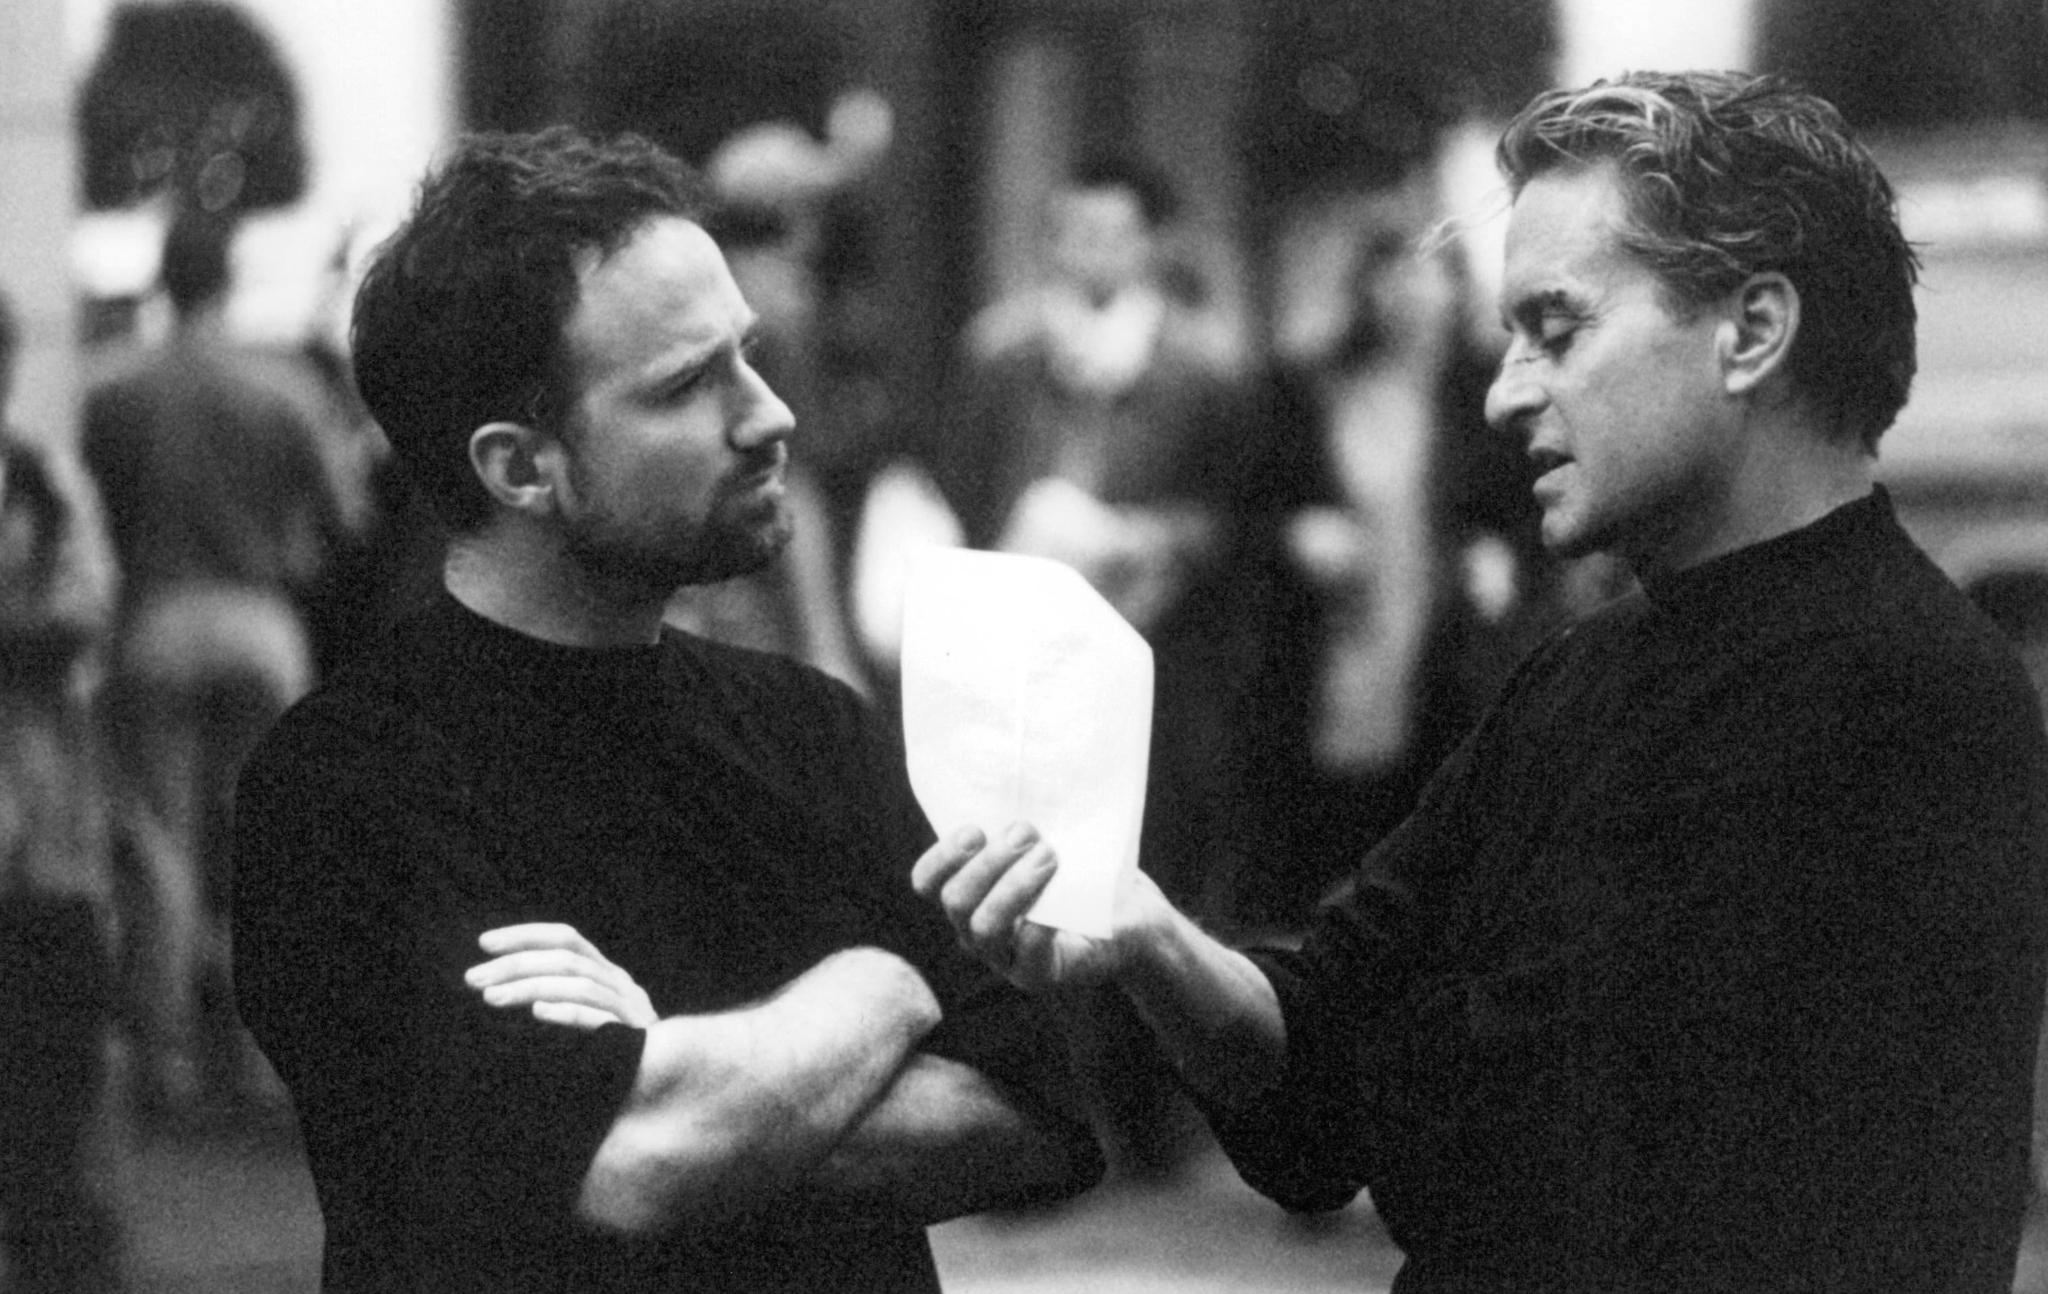 still-of-michael-douglas-and-david-fincher-in-the-game-_1997_-large-picture.jpg